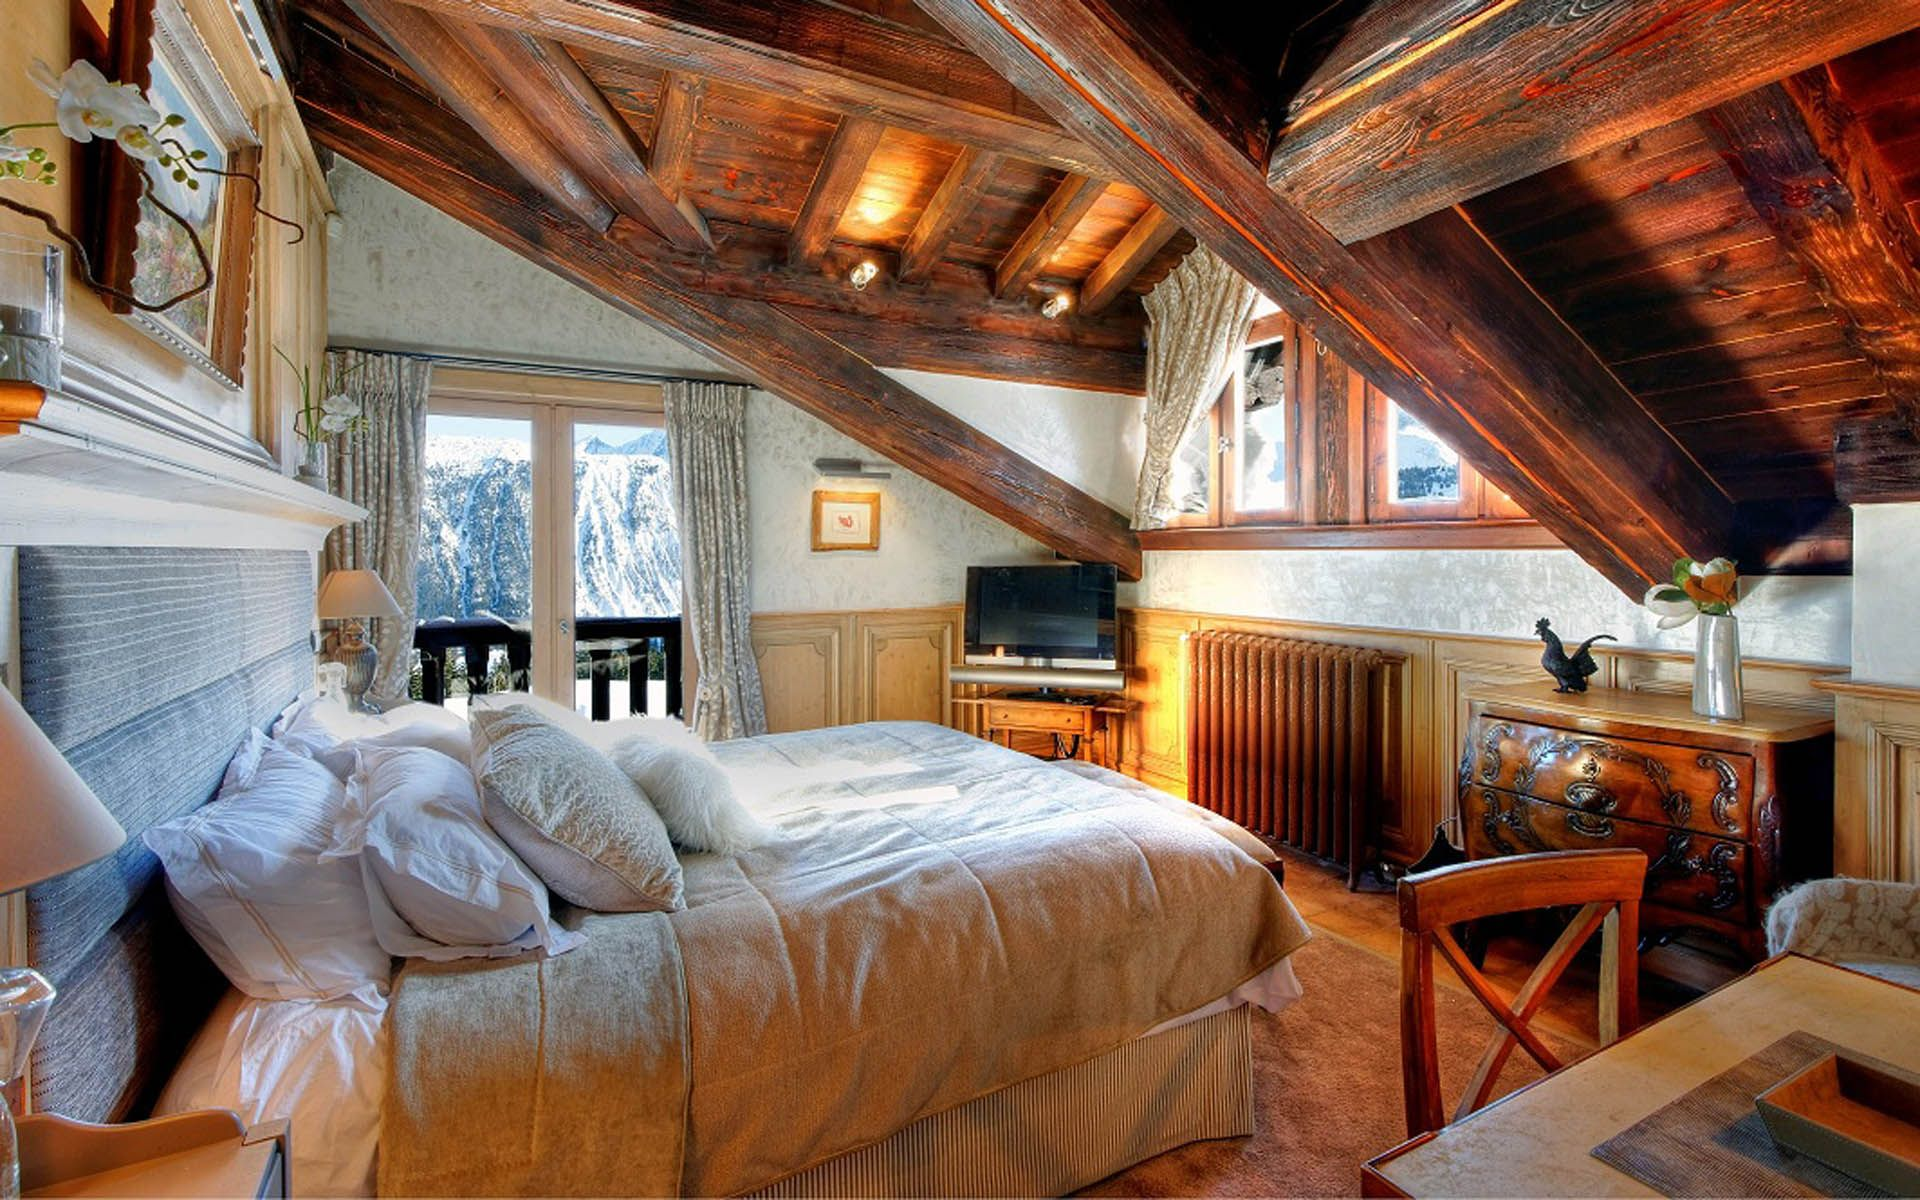 Fancy Living In Europes Most Expensive Ski Chalet - Ski